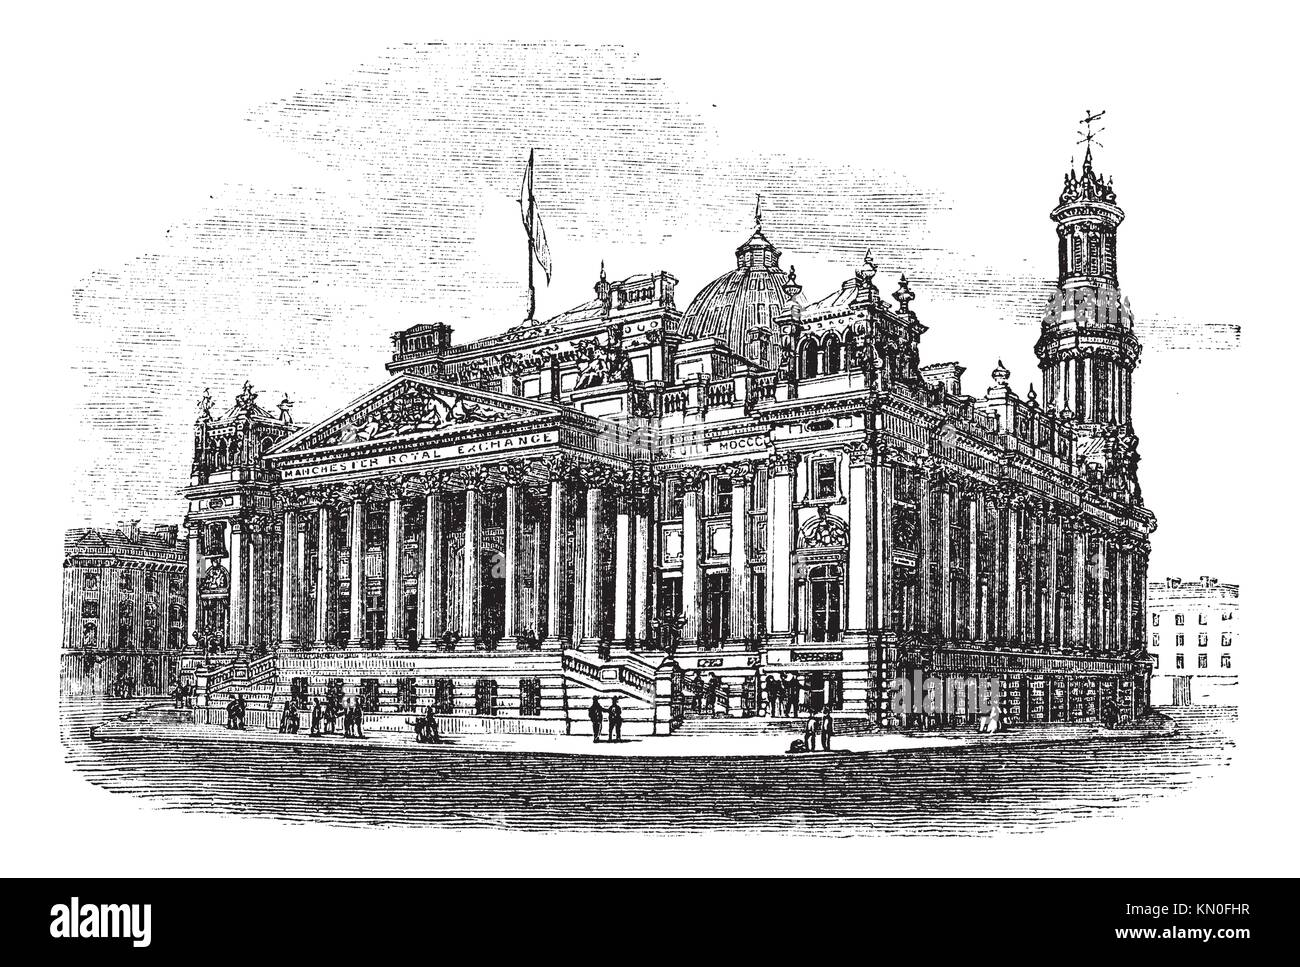 Royal Exchange in Manchester, England, during the 1890s, vintage engraving  Old engraved illustration of Royal Exchange - Stock Image